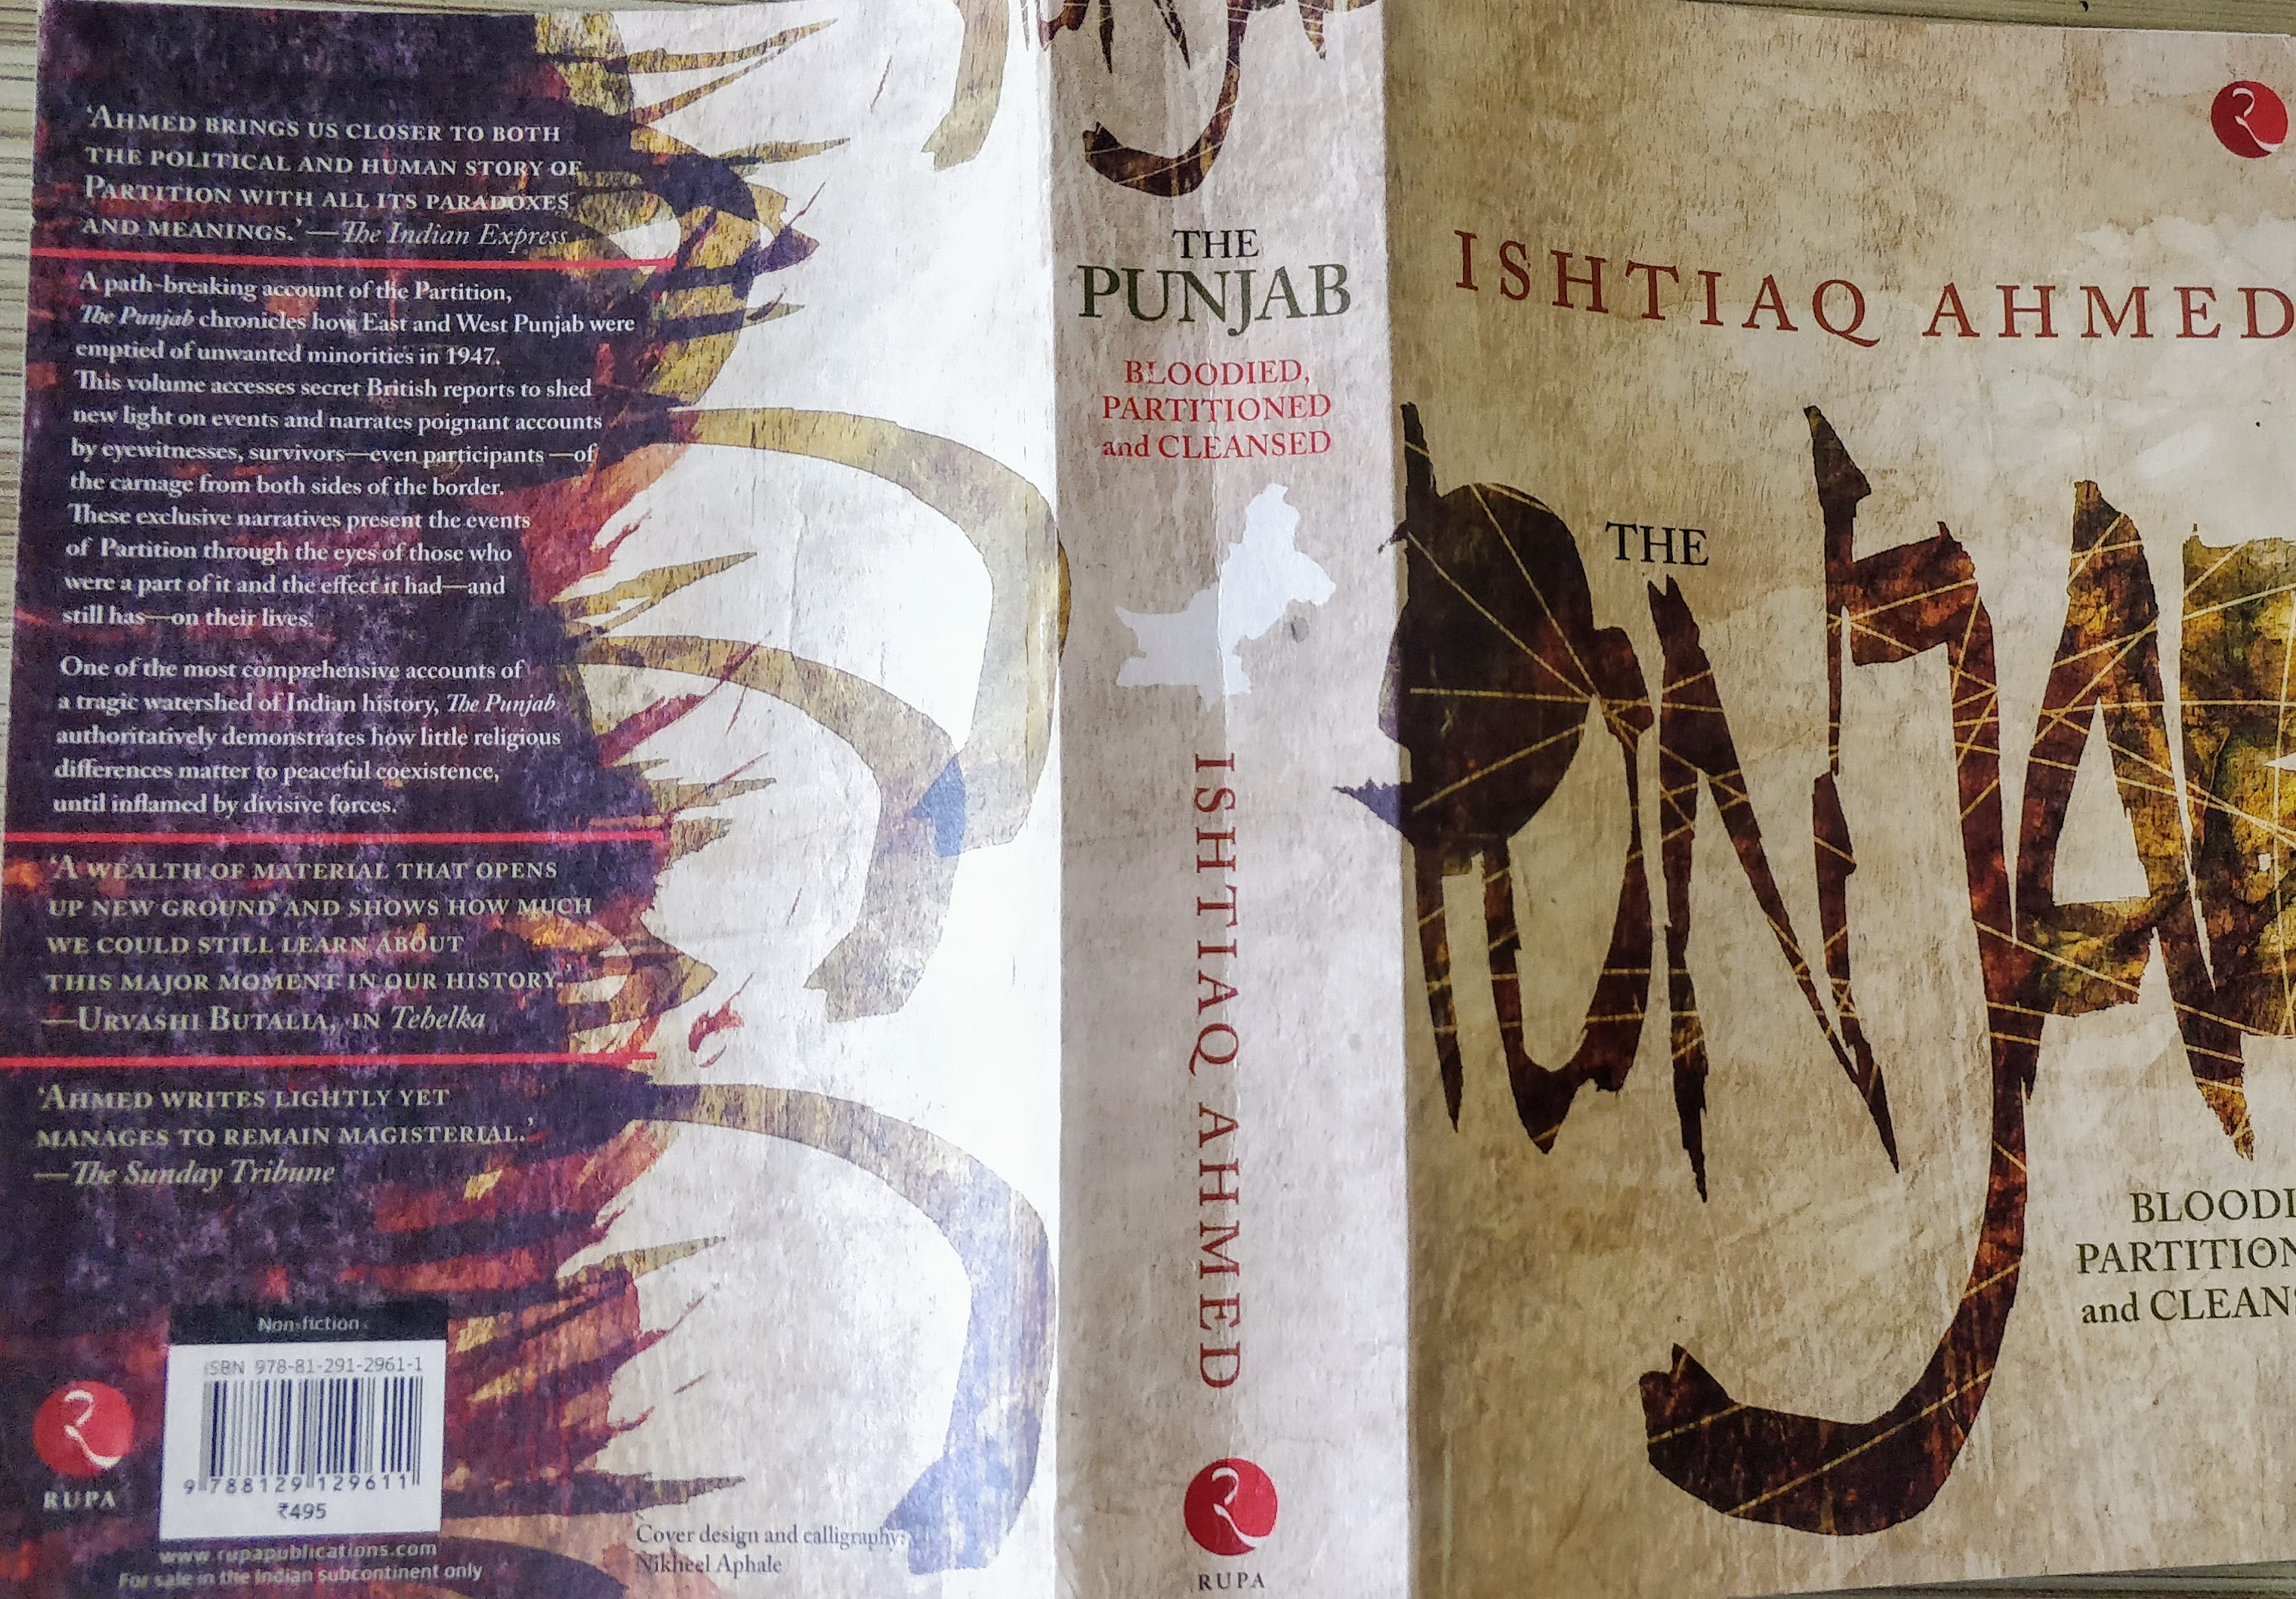 Ishtiaq Ahmed, The Punjab: Bloodied, Partitioned and